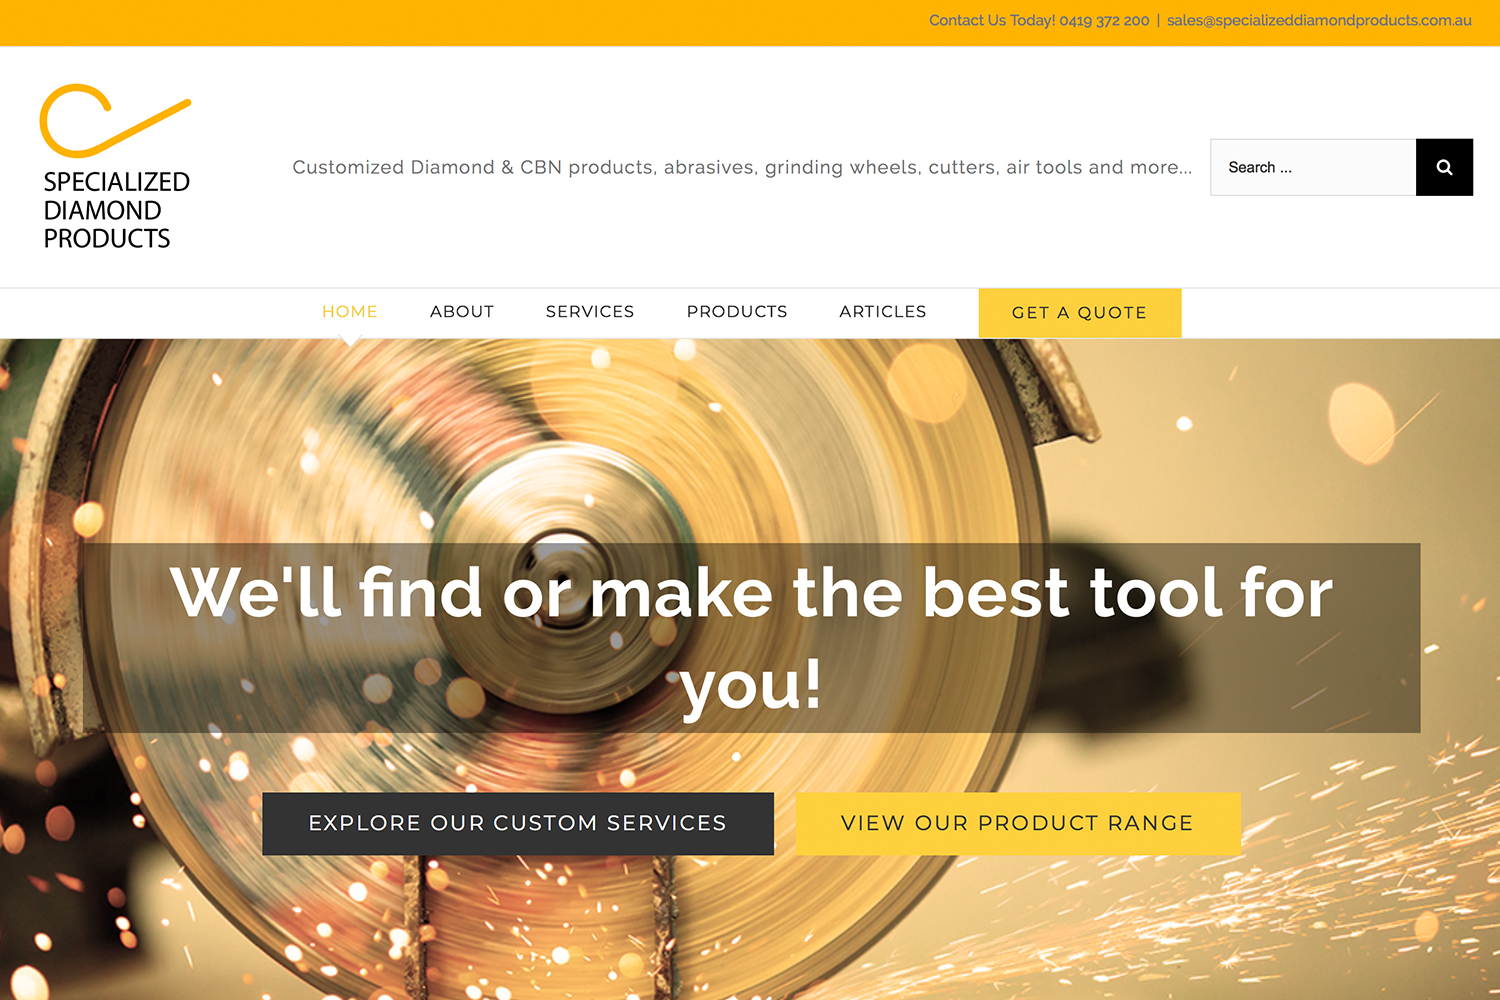 New Website Launched: Specialized Diamond Products